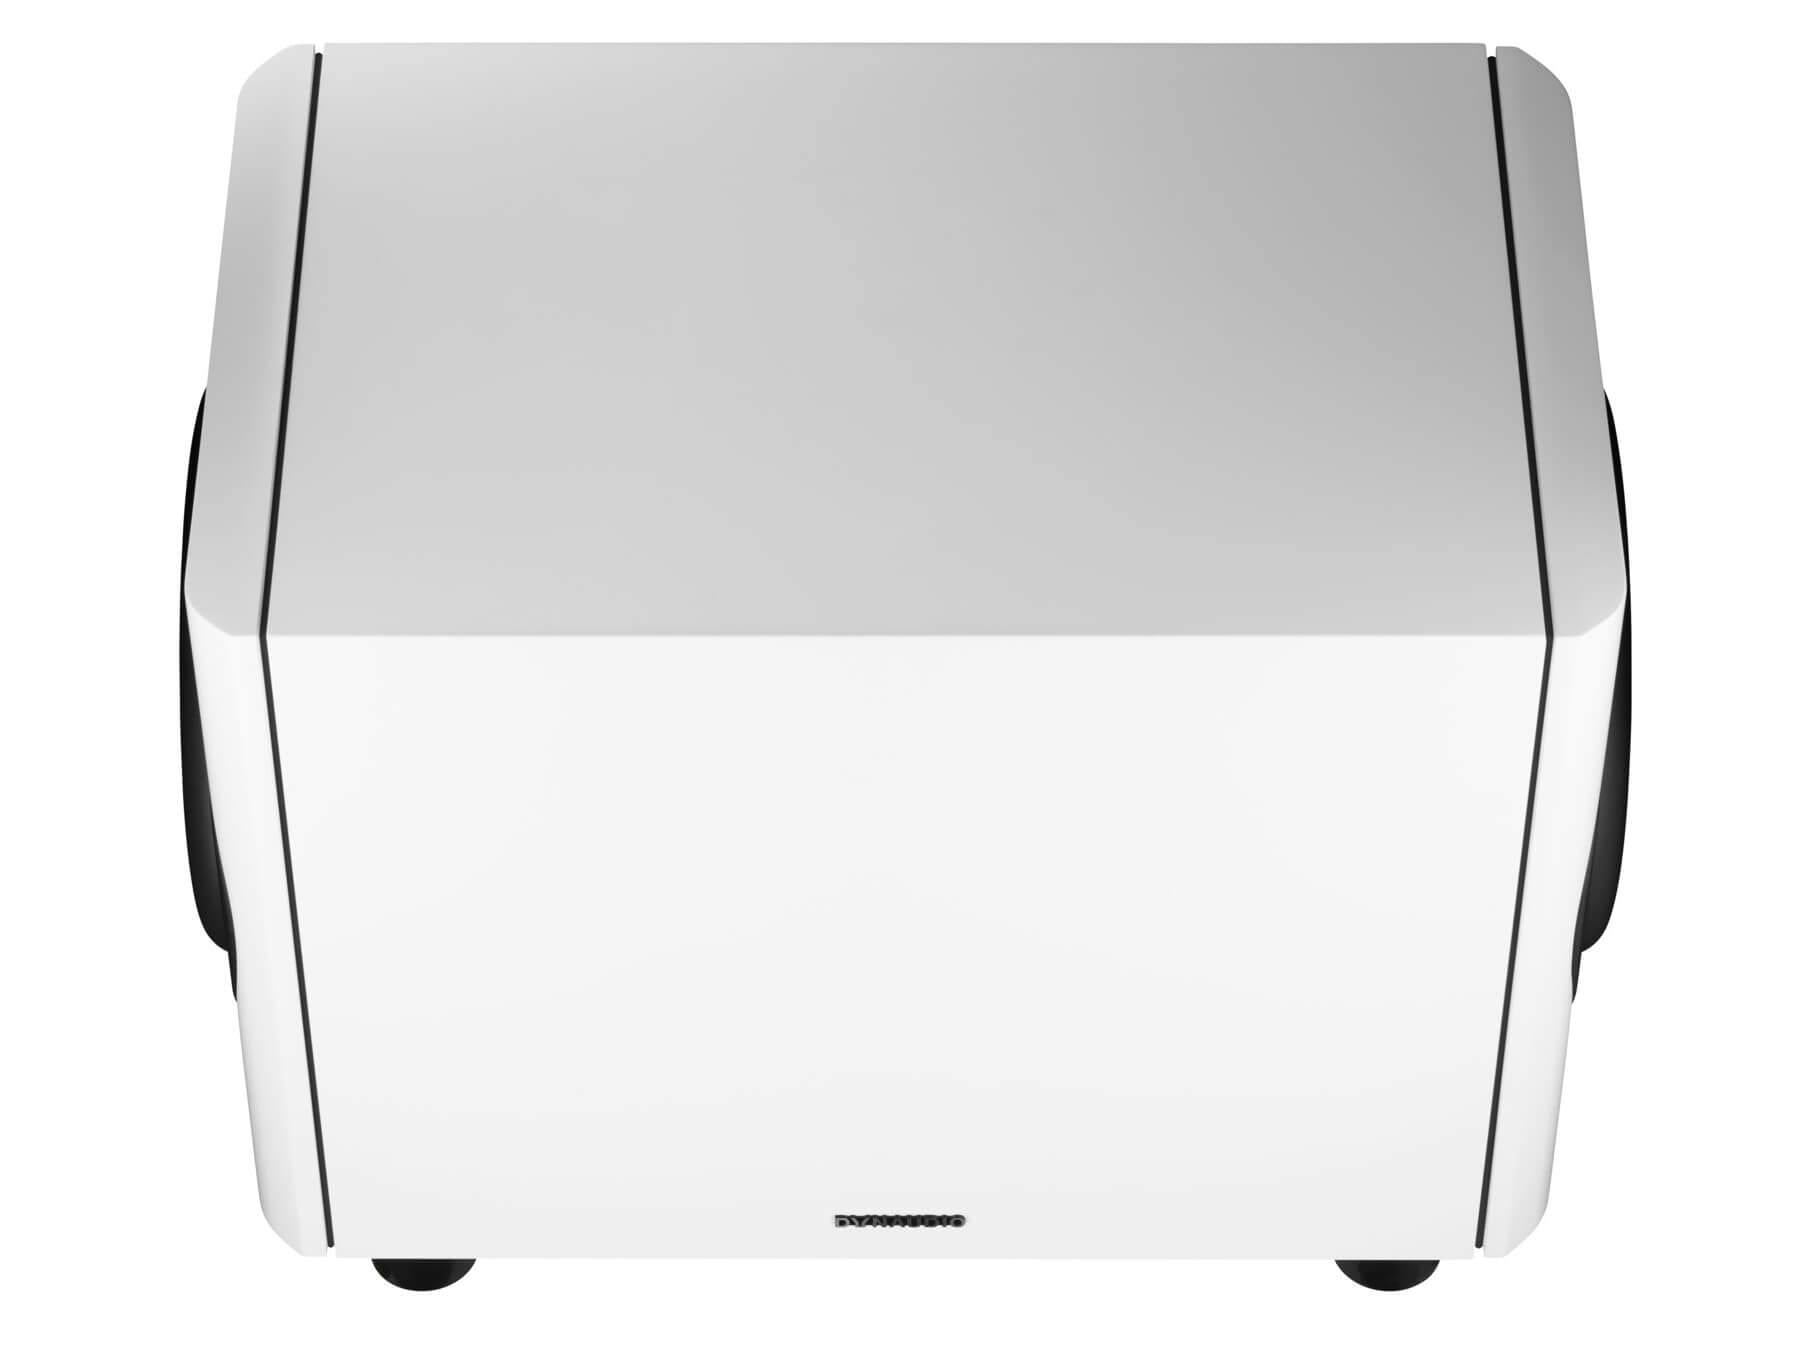 Dynaudio Sub 6 - Home Audio Subwoofer - White Top